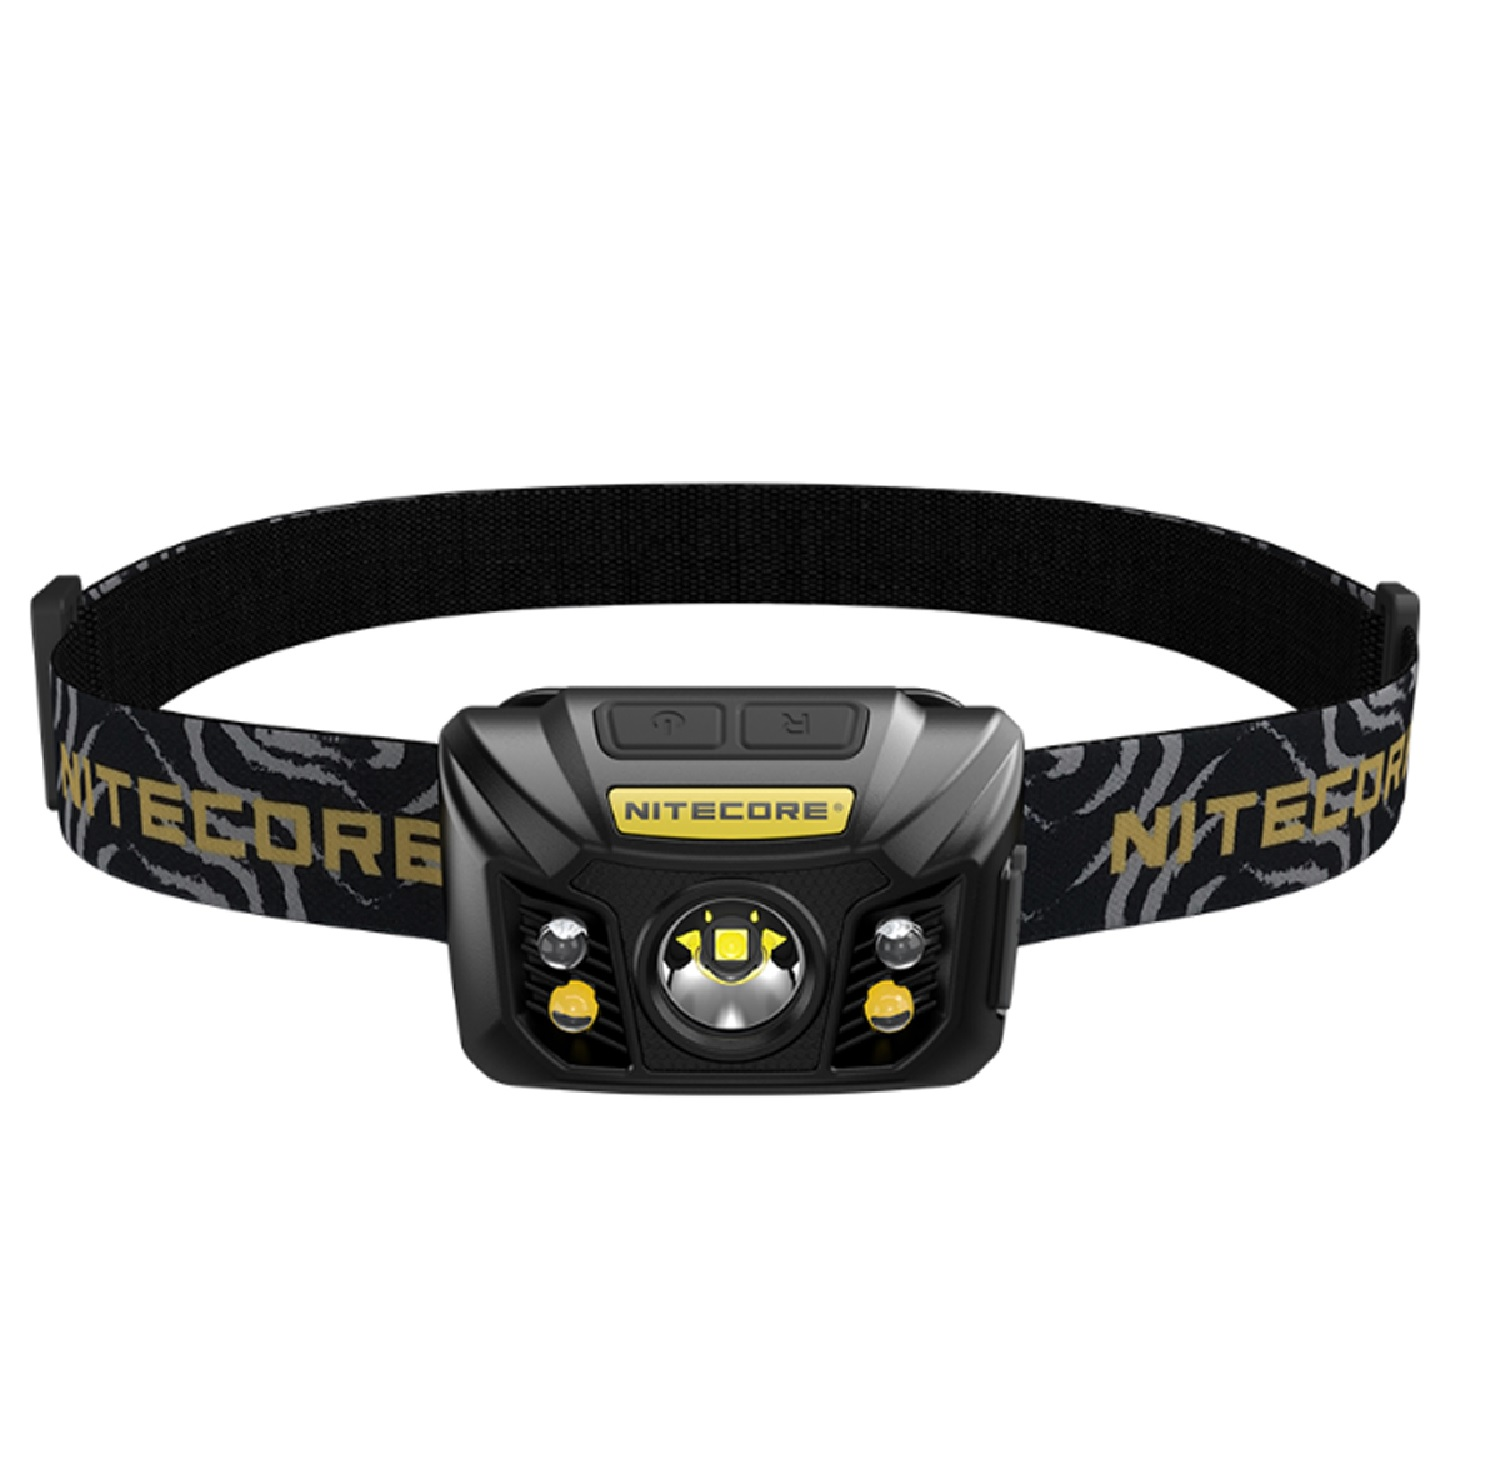 NITECORE NU32 550 Lumen LED RCHRGBL Headlamp